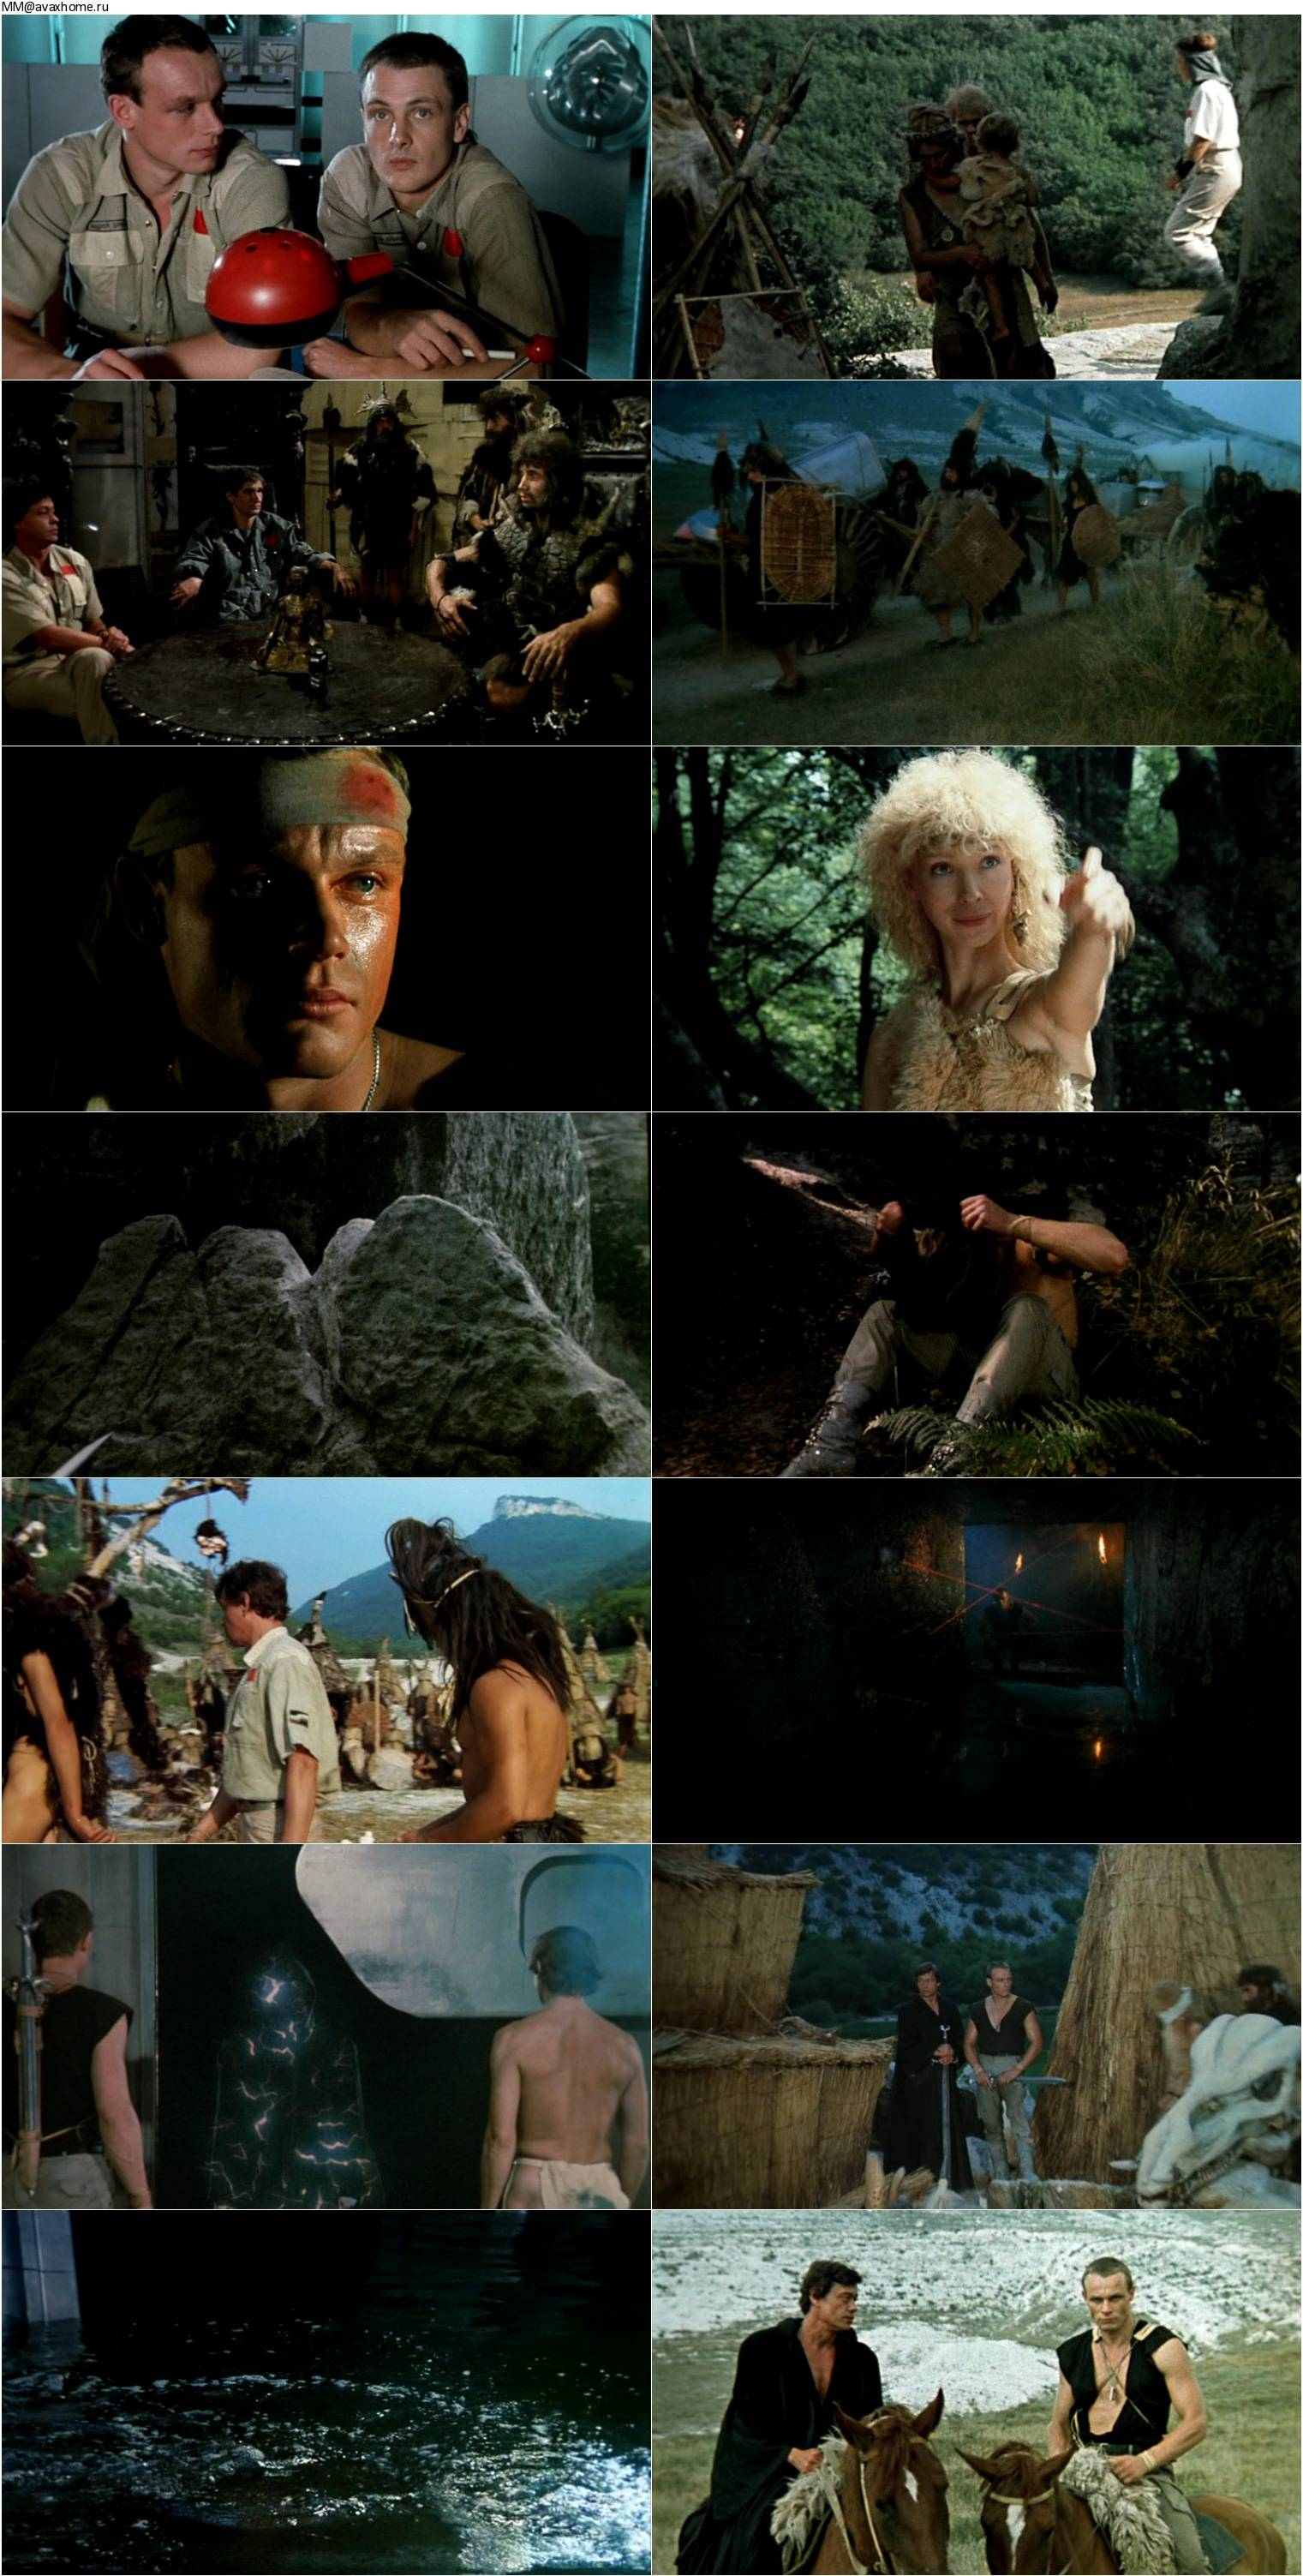 The Witches Cave (1989) Podzemelye vedm